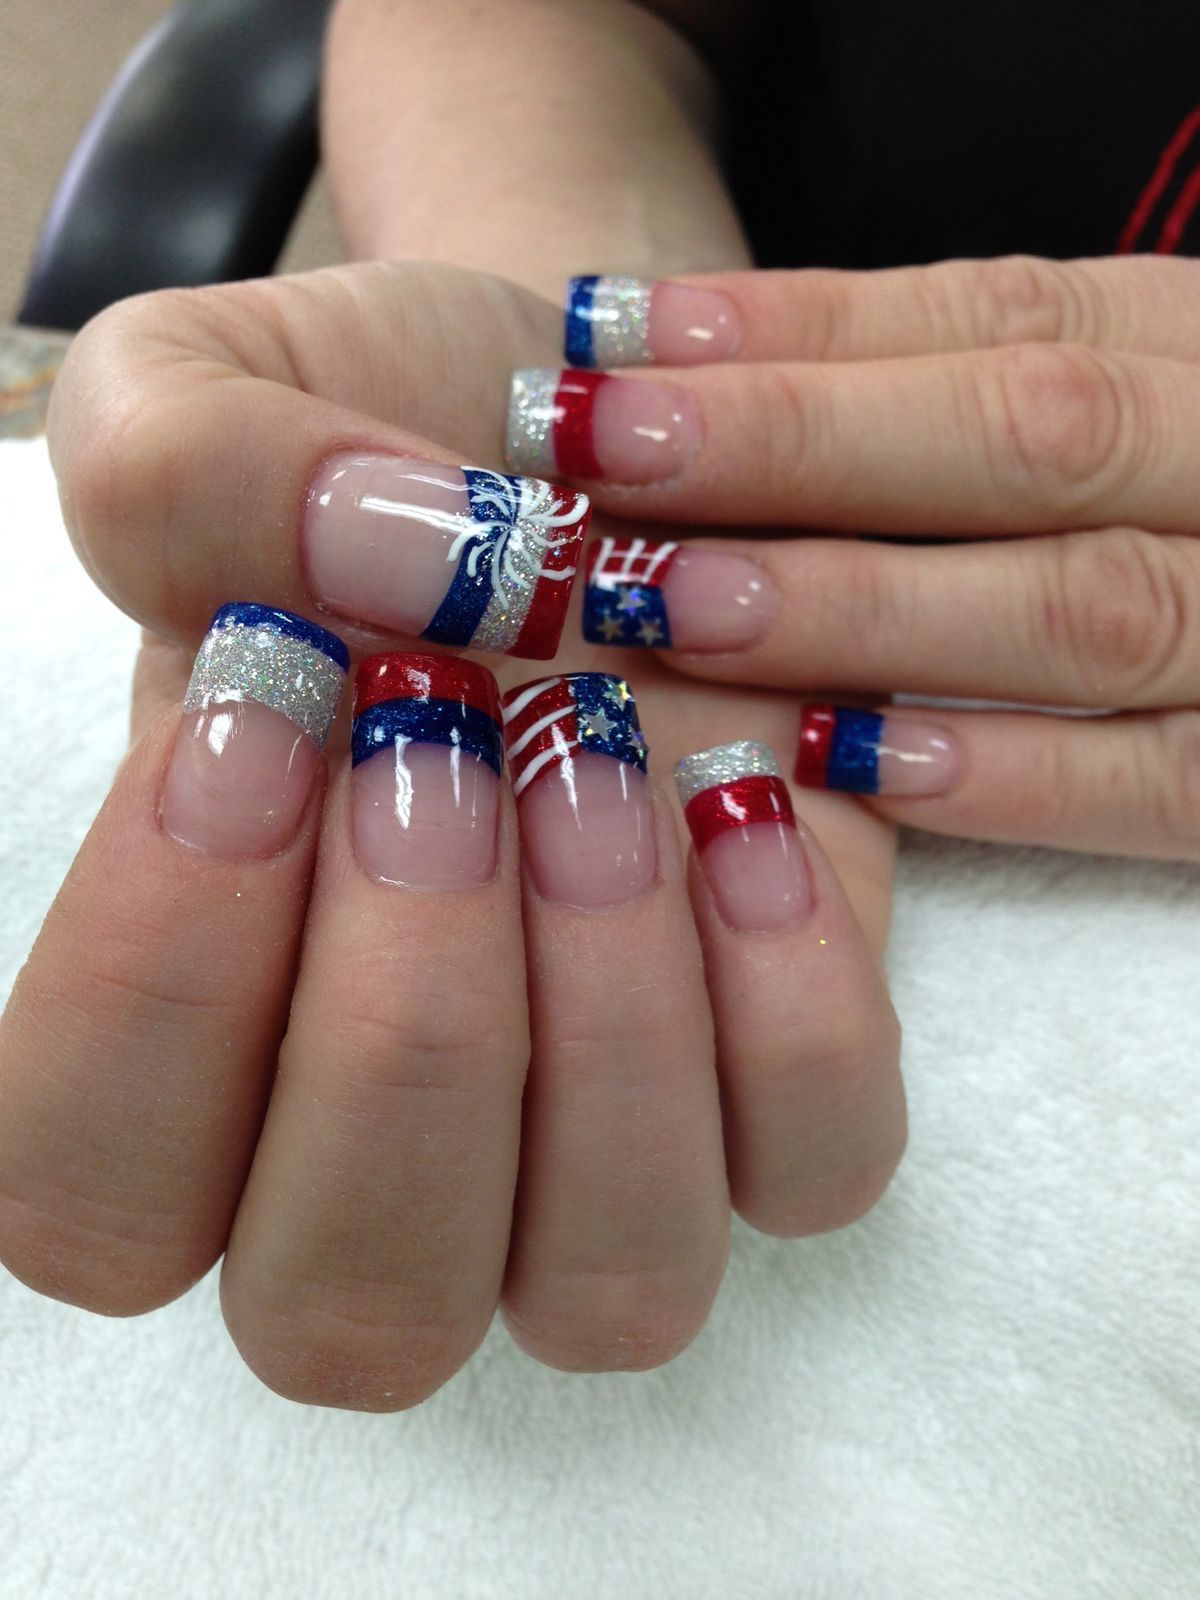 Pin by Lacreshia Williams on nail designs on like | Pinterest ...